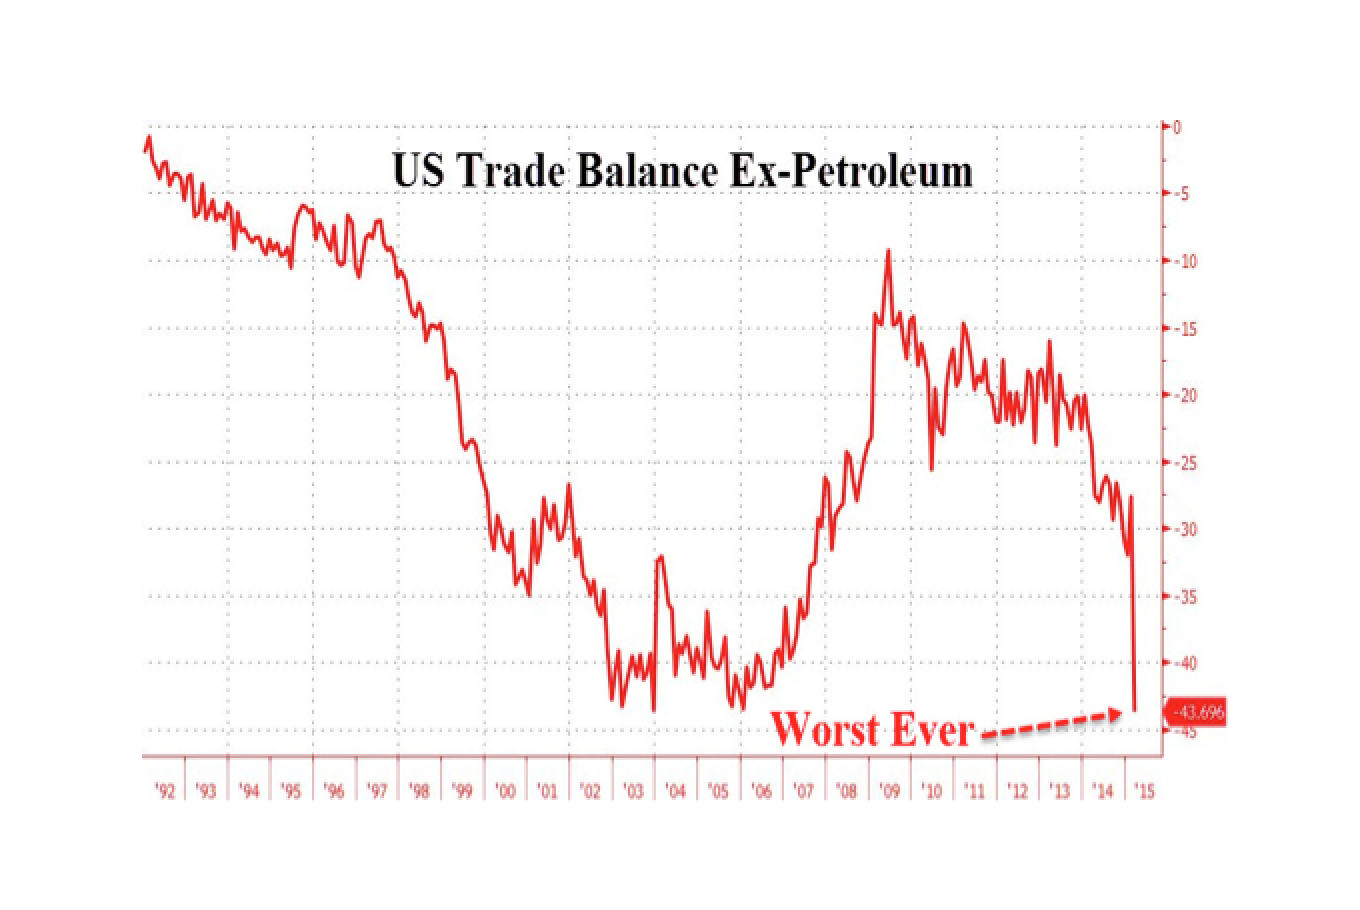 Worst Ever US Trade Deficit Excluding Crude Hints At Upcoming QE4